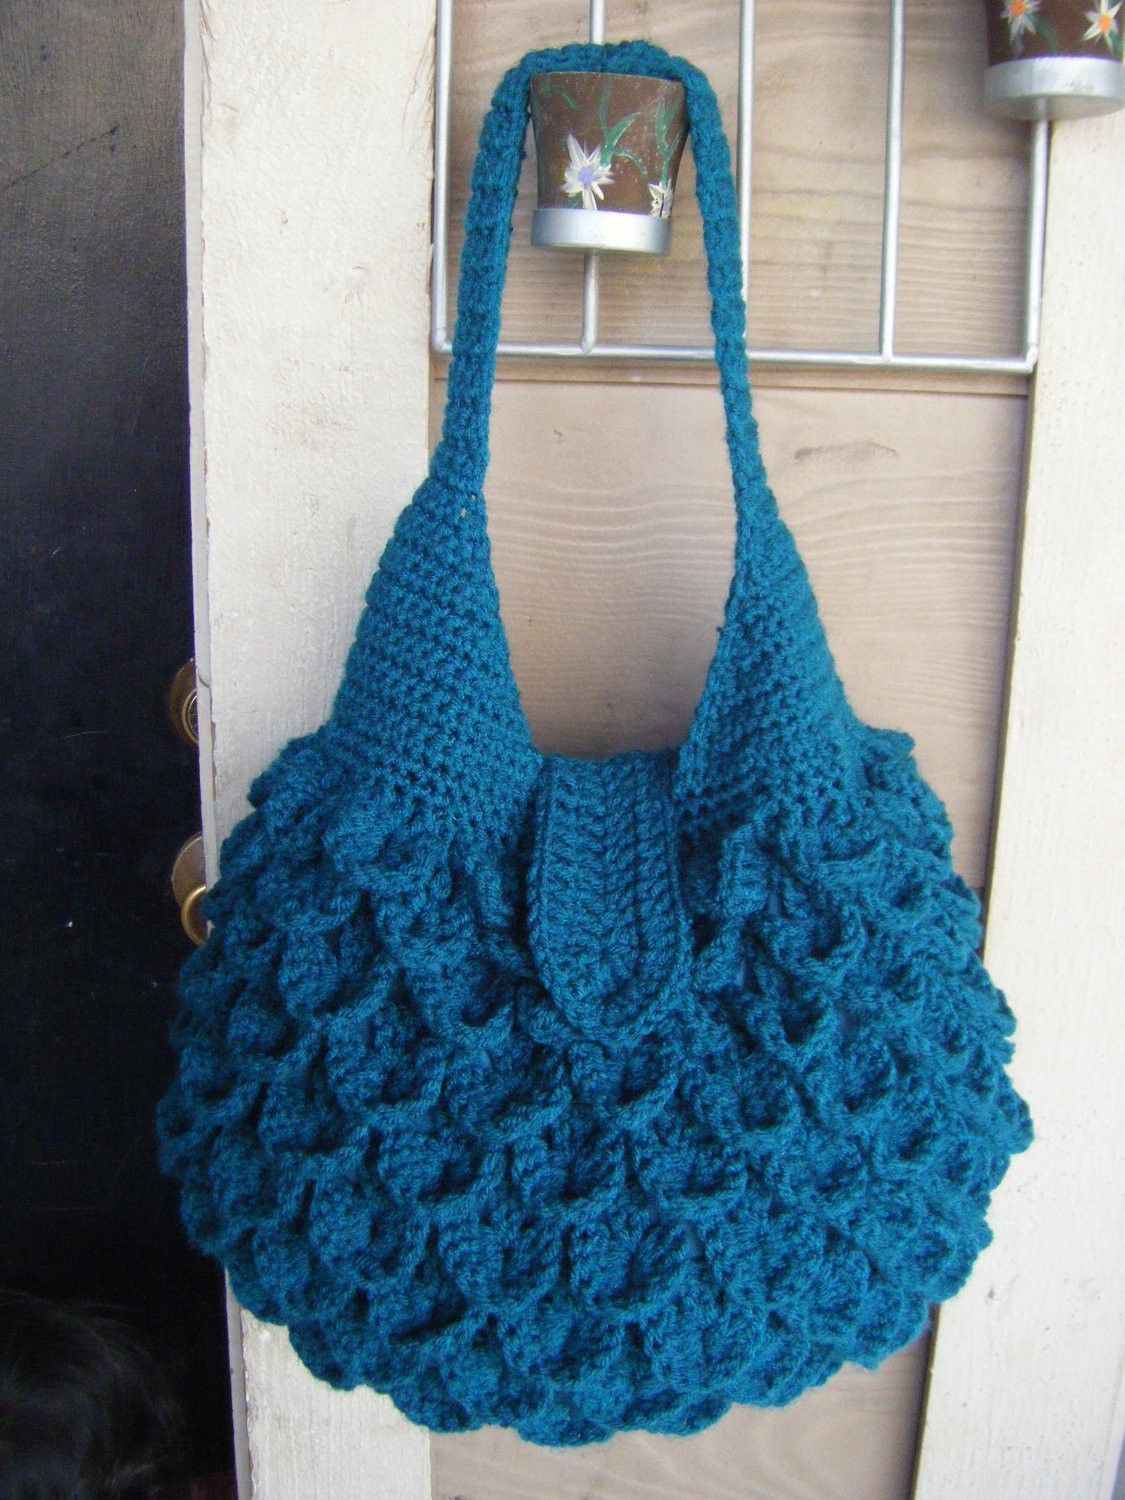 Crochet Crocodile Bag Pattern PERMISSION SELL finish product